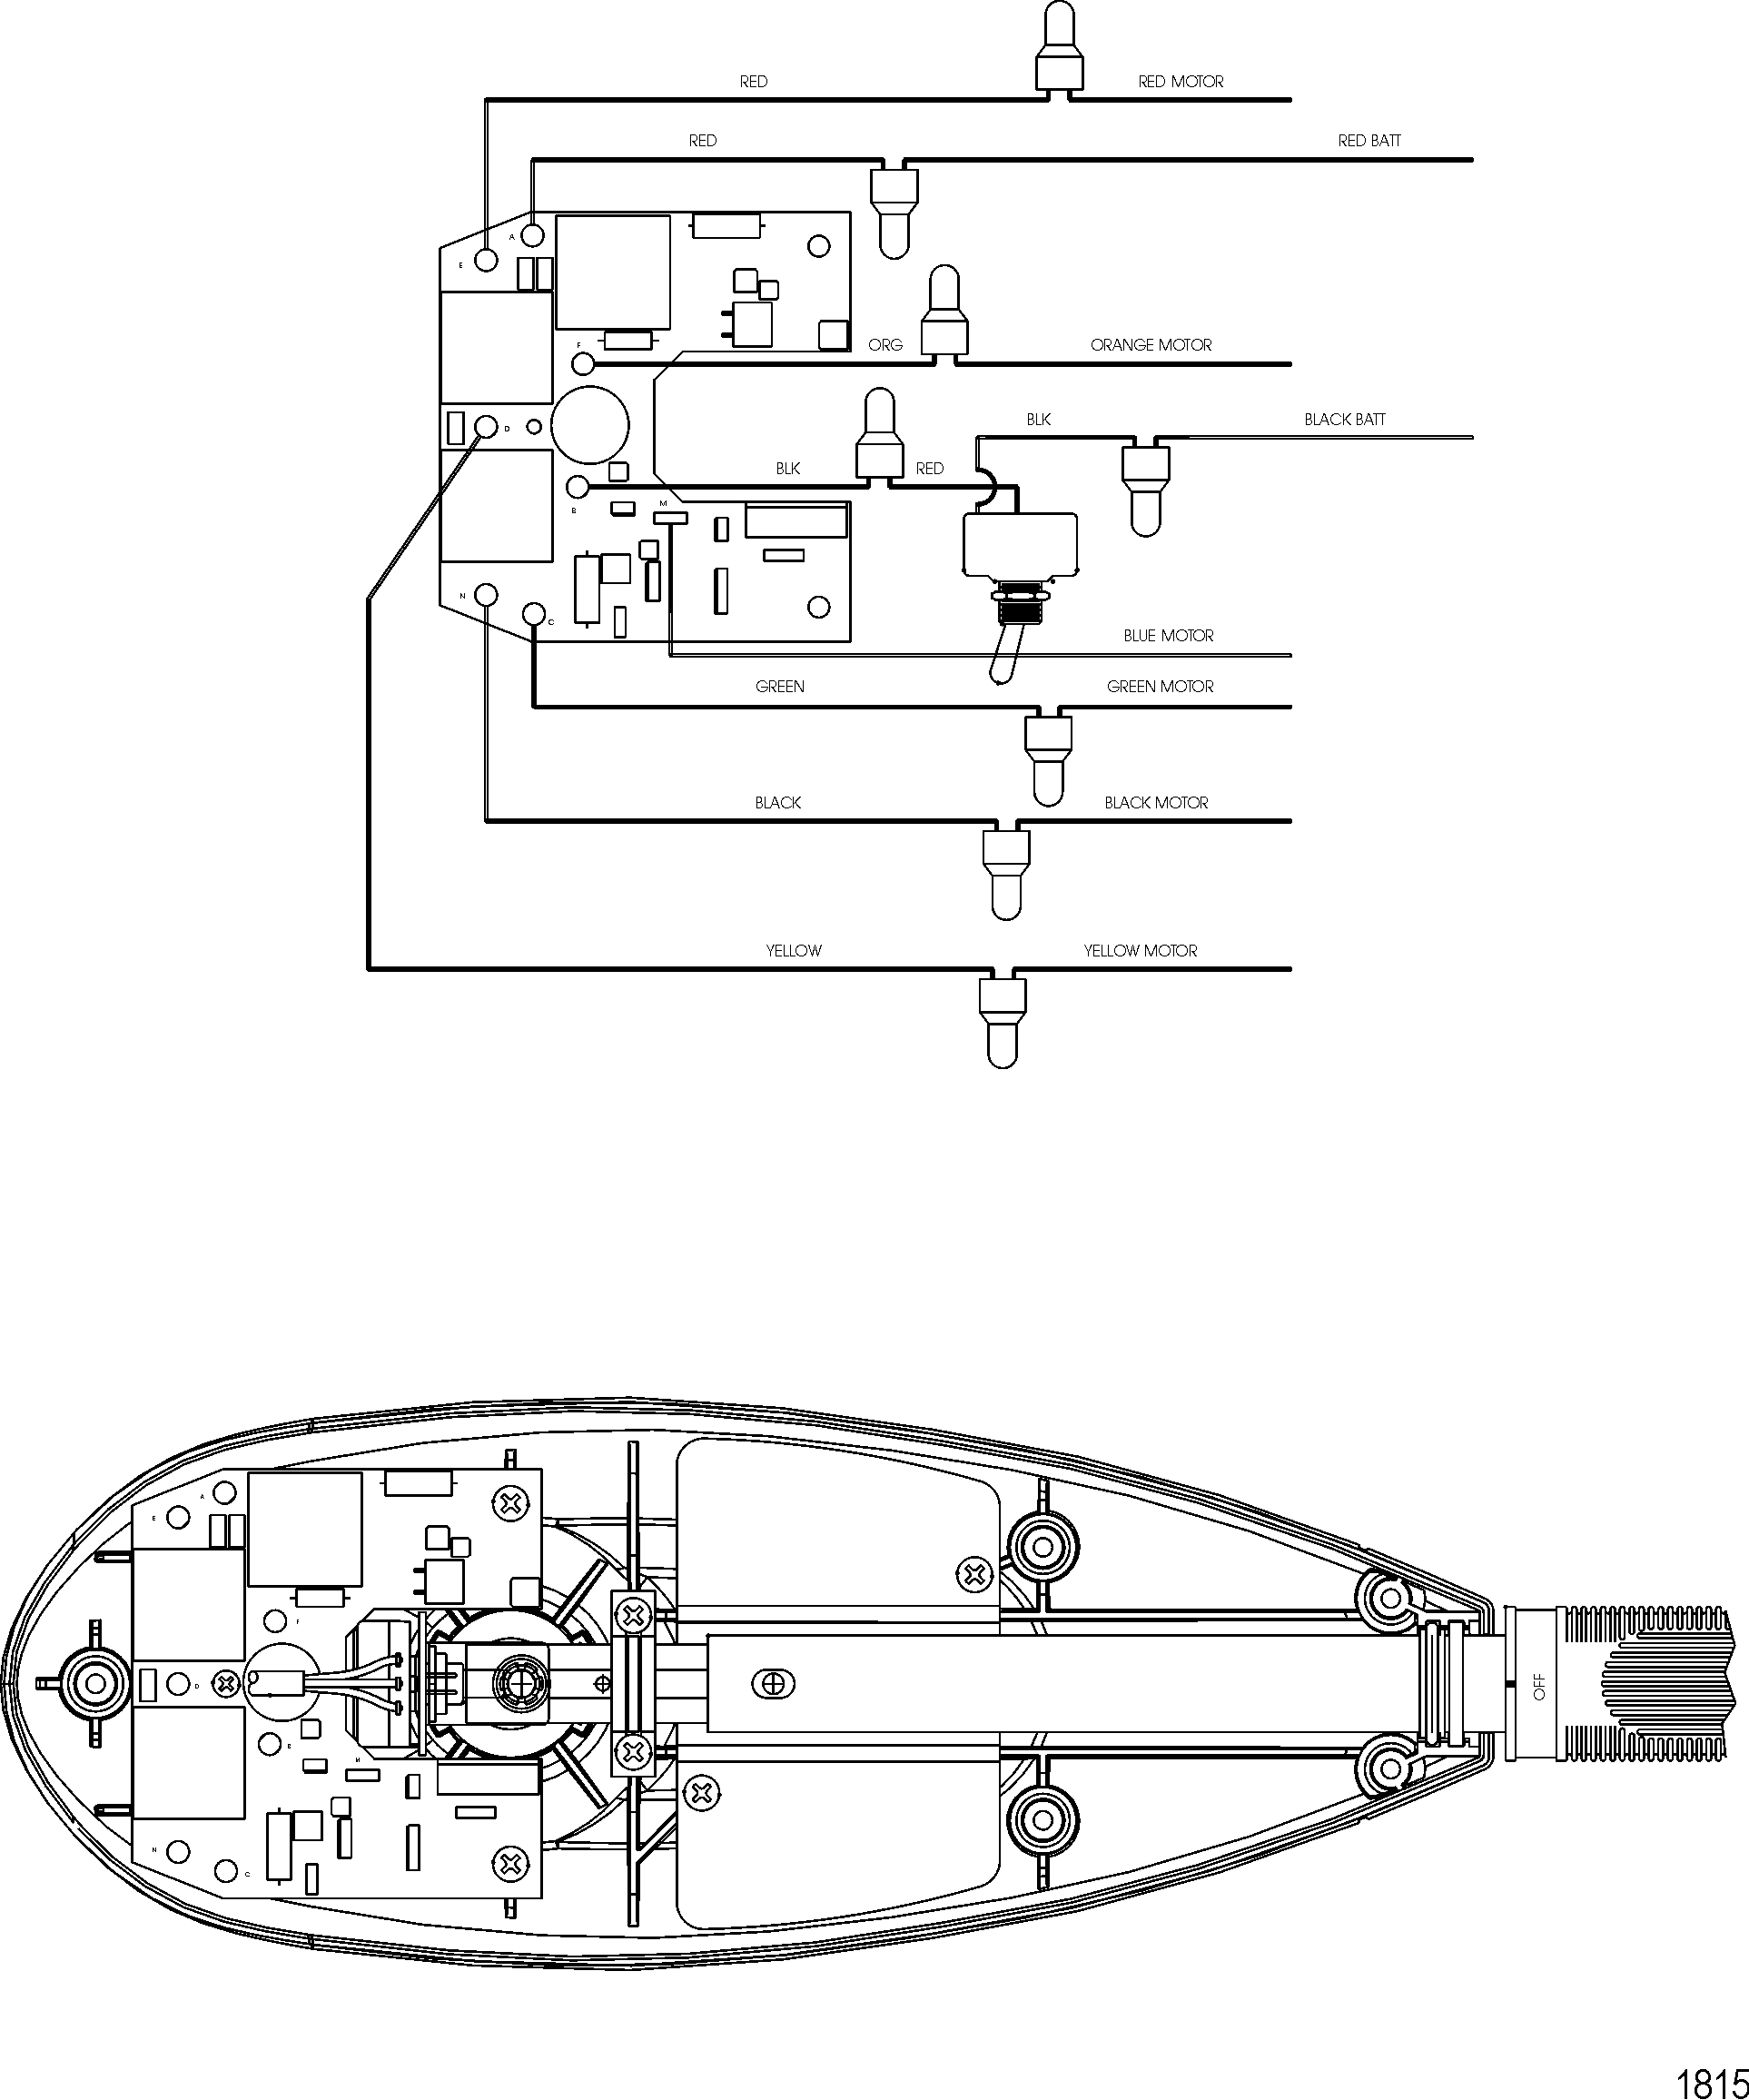 1815 ������� ��������� trolling motor motorguide fresh water series motorguide brute 767 wiring diagram at edmiracle.co